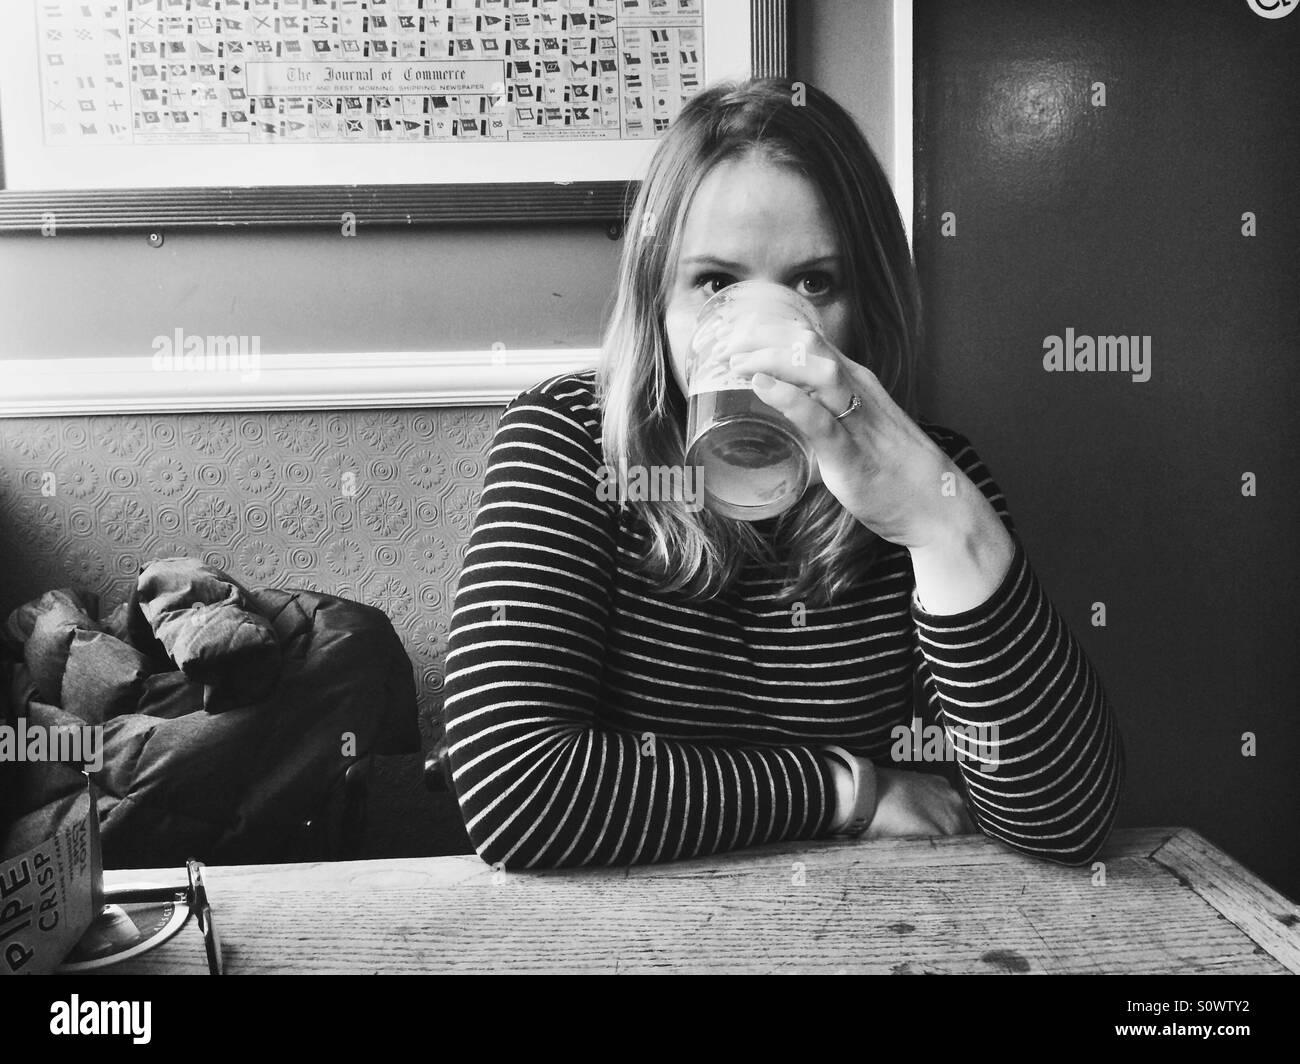 Girl drinking a pint in a pub - Stock Image